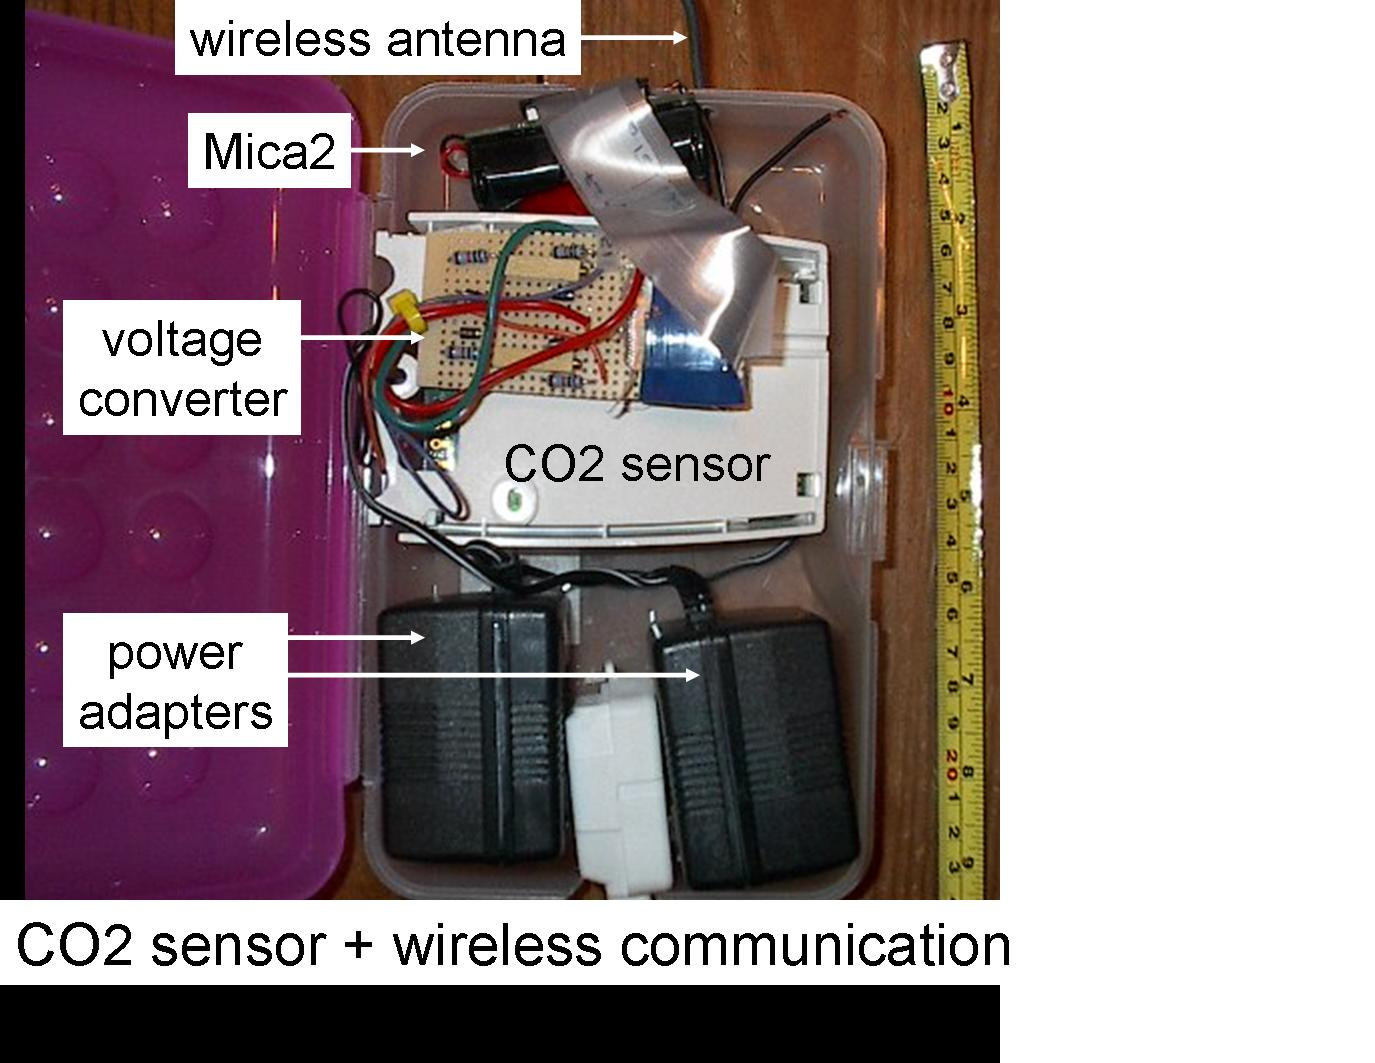 CO2 sensor + wireless